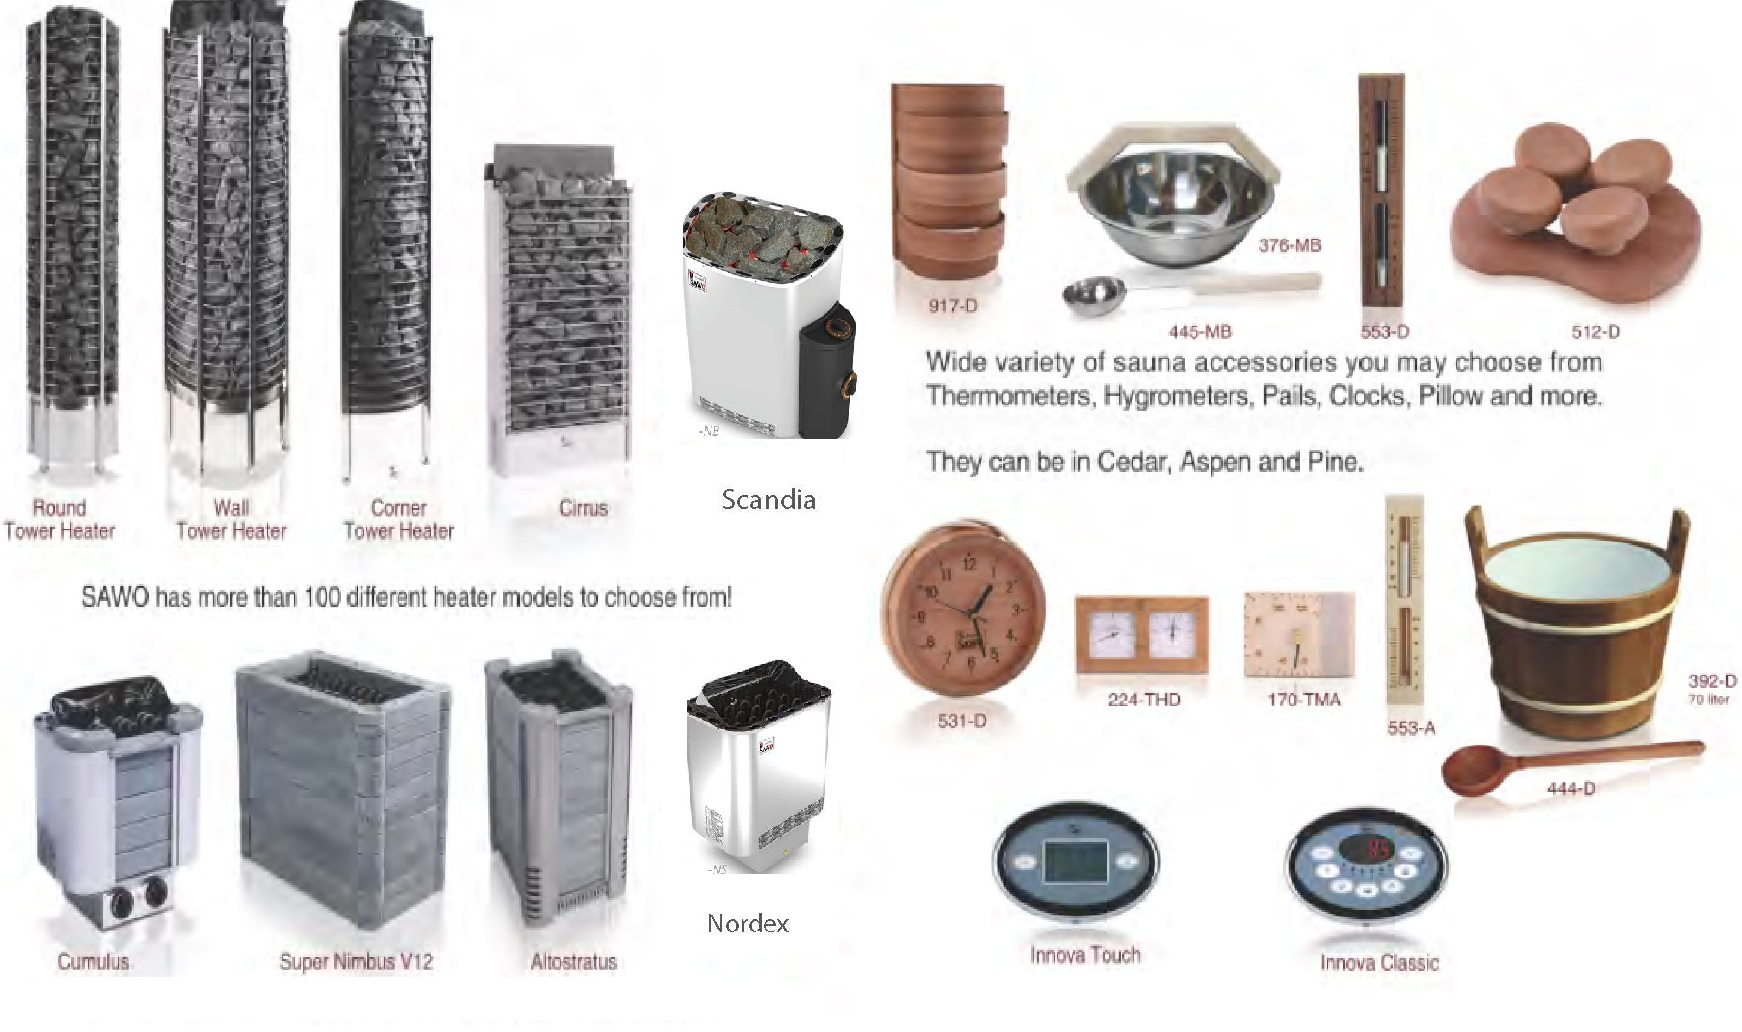 Saunas And Accessories For Sale Thailand